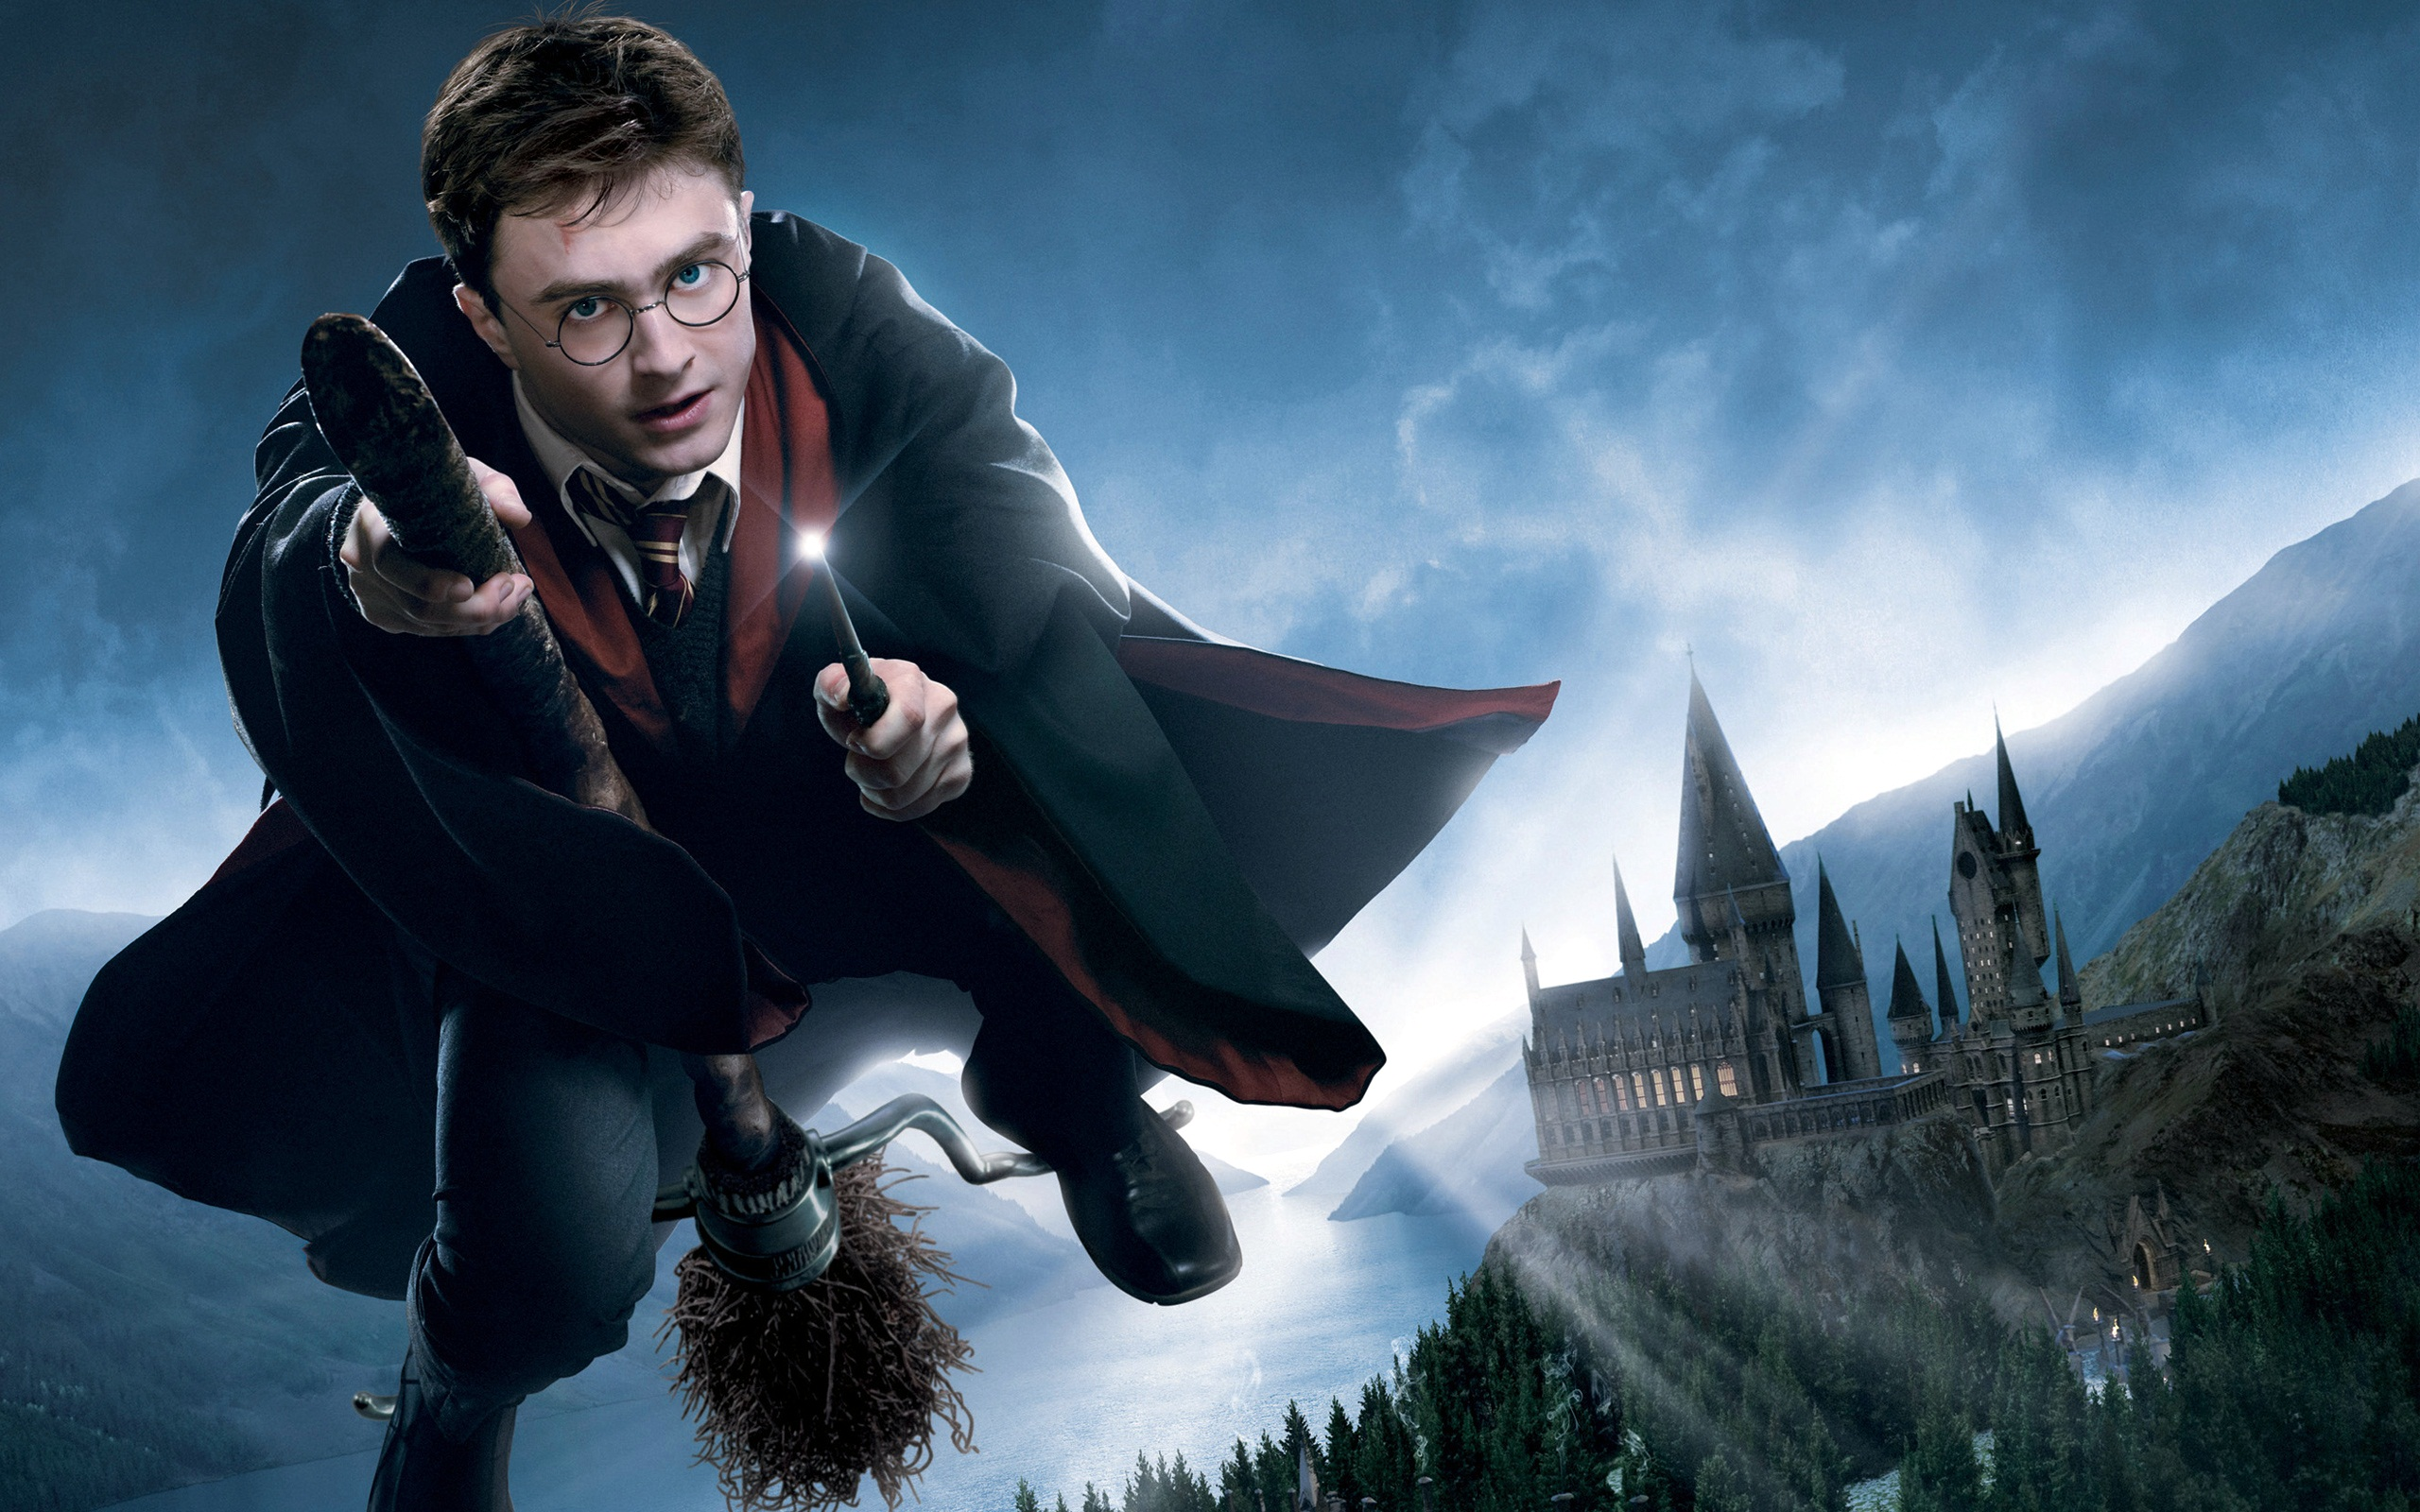 Sorcerer's Stone Turns 15: 6 Places To Celebrate Harry Potter